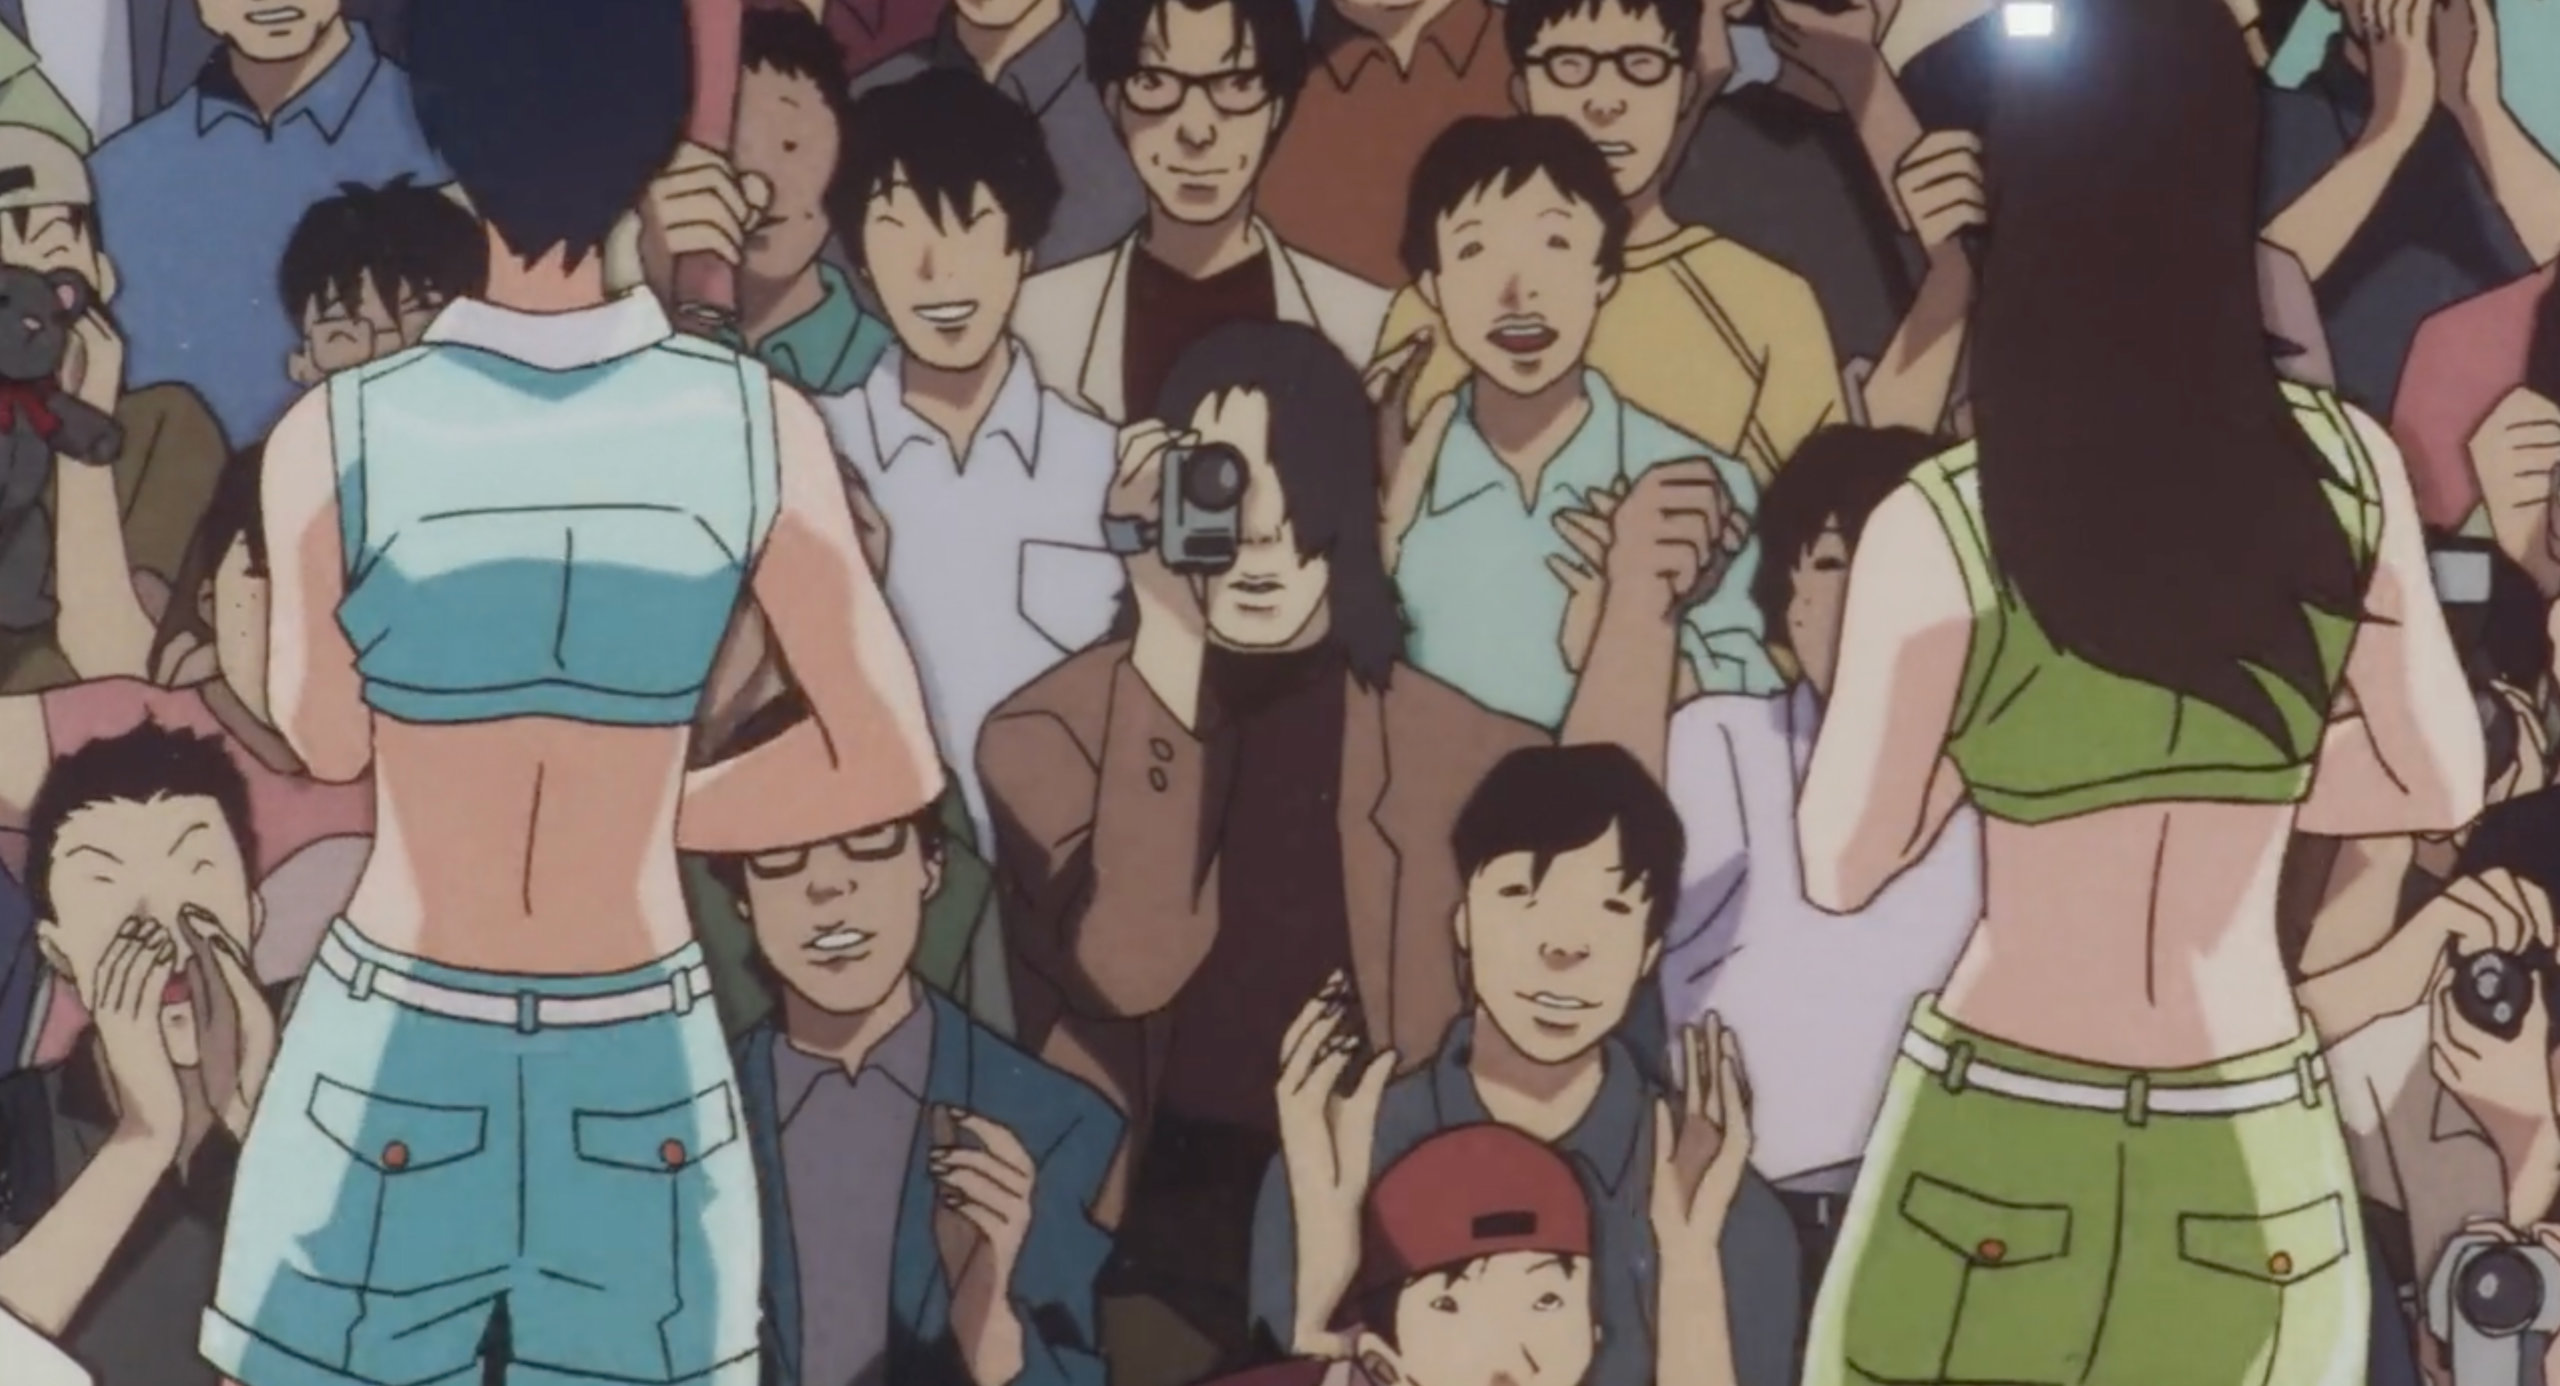 Me-Mania videotapes CHAM! at a concert in Perfect Blue